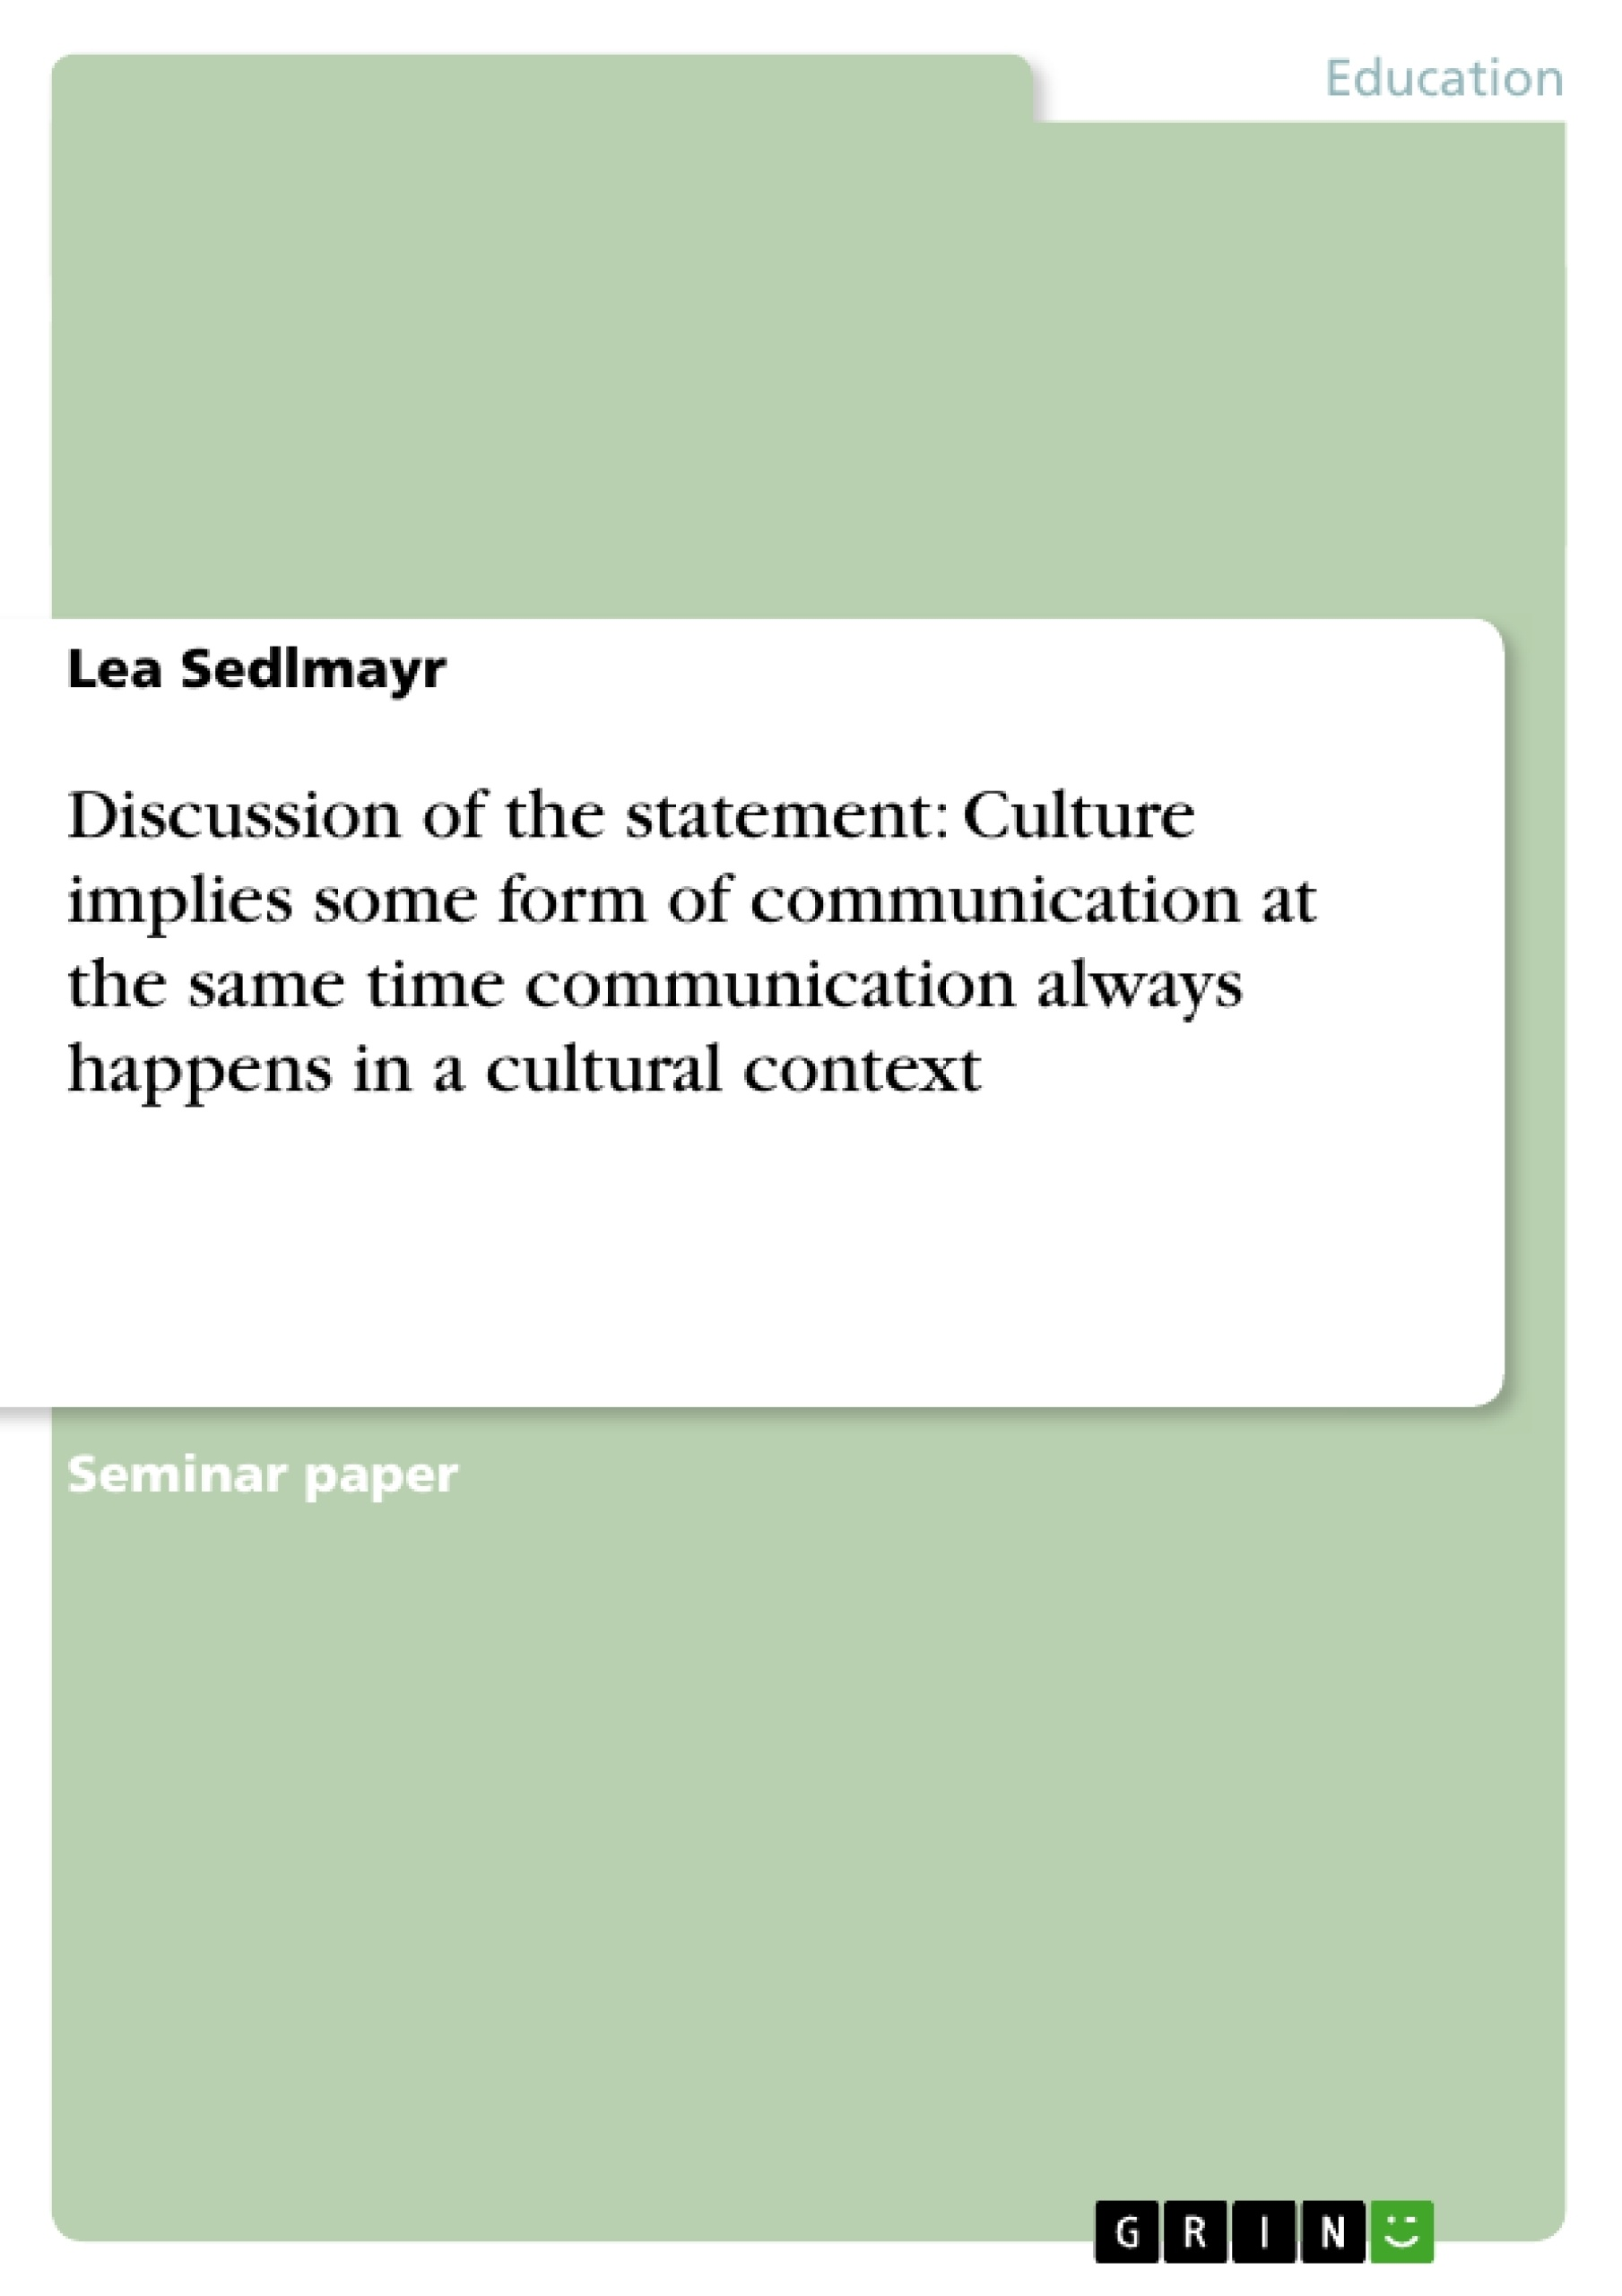 Title: Discussion of the statement: Culture implies some form of communication at the same time communication always happens in a cultural context